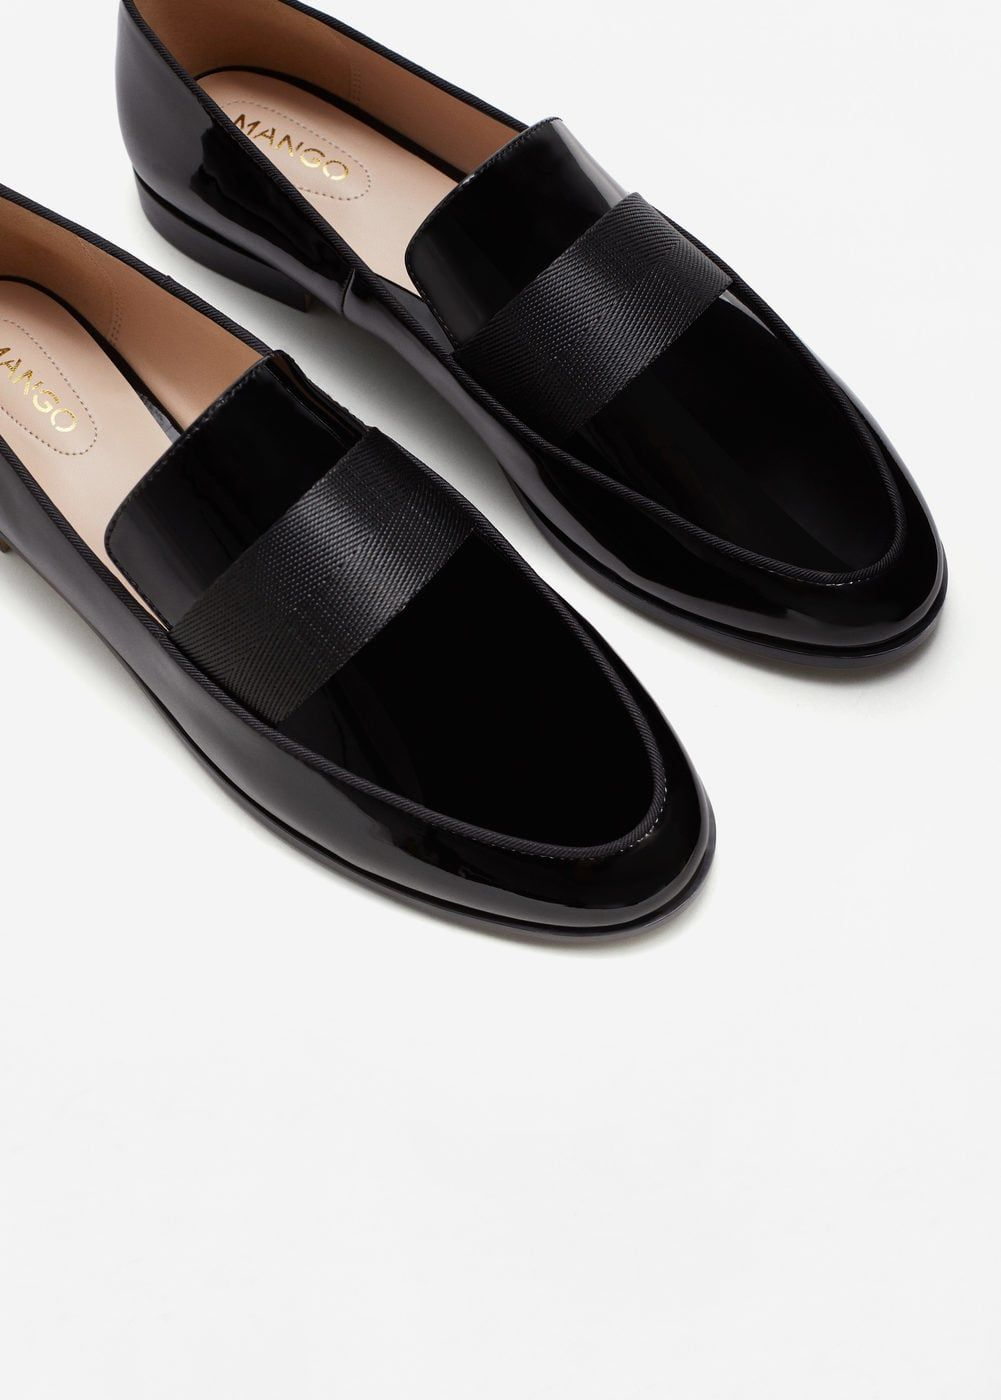 3610f5a83d0 Patent loafers - Woman in 2019